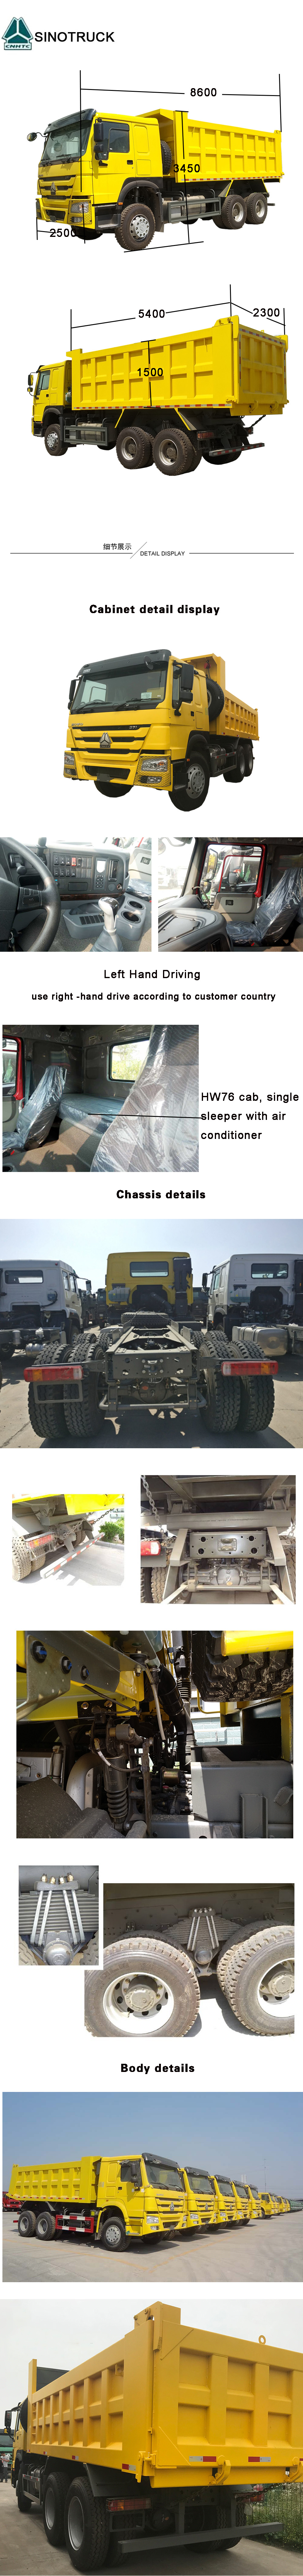 High quality low price sinotruk heavy duty tipper dump truck for sale